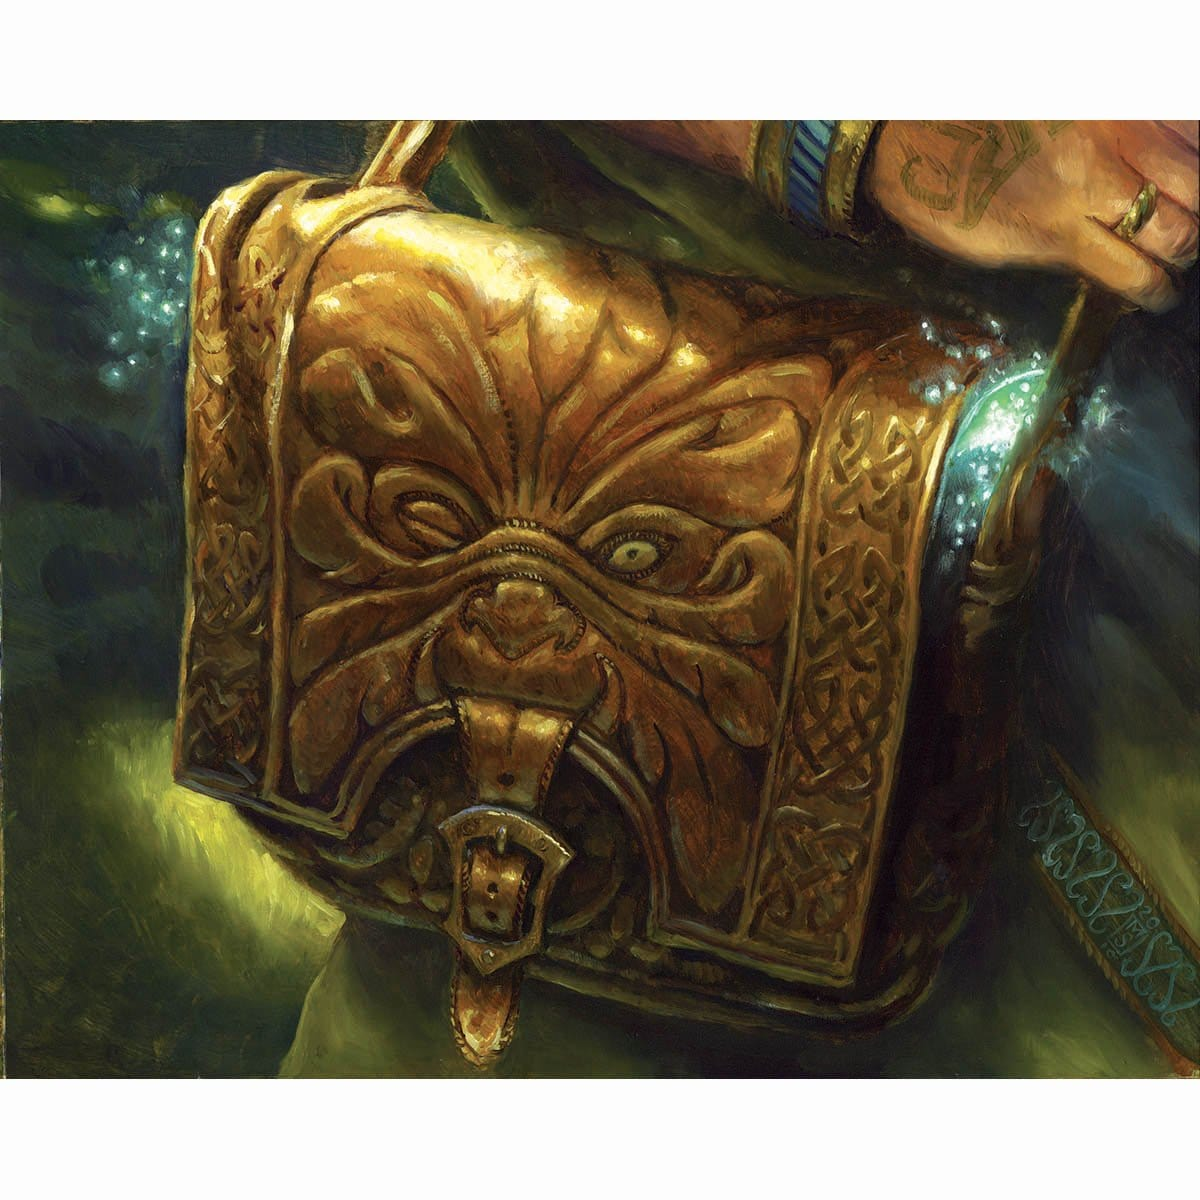 Druidic Satchel Print - Print - Original Magic Art - Accessories for Magic the Gathering and other card games